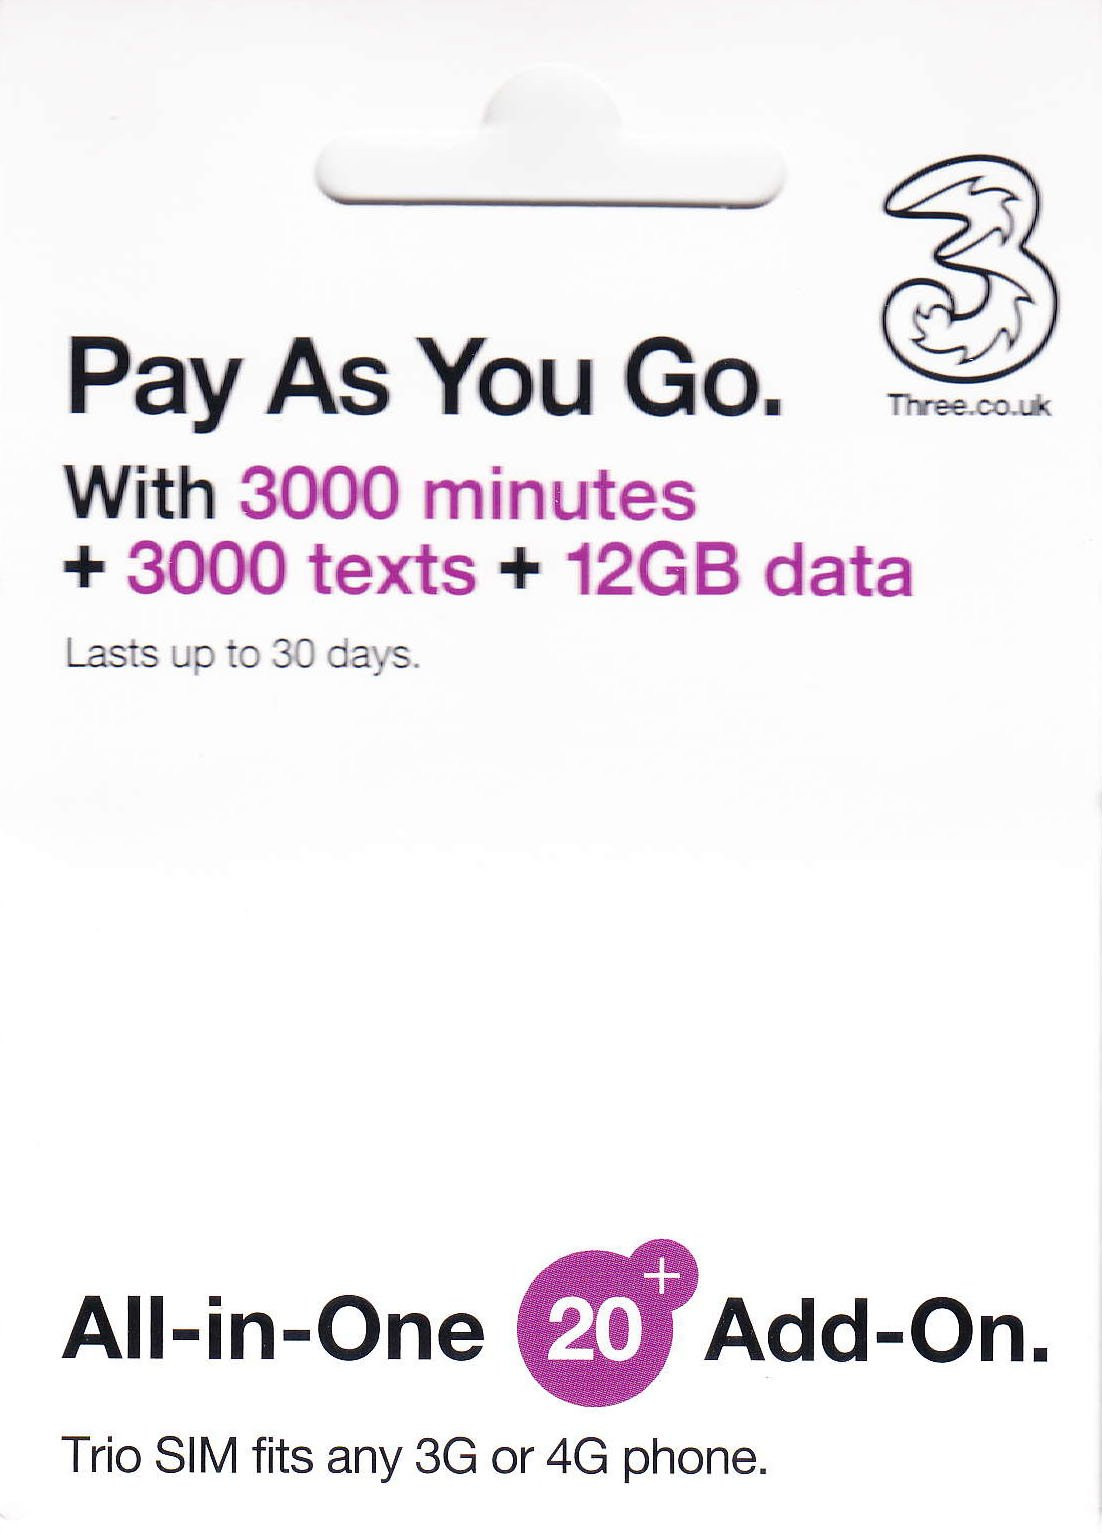 PrePaid Europe (UK THREE) sim card 12GB data+3000 minutes+3000 texts for 30 days with FREE ROAMING / USE in 71 destinations including all European countries by Three Mobile